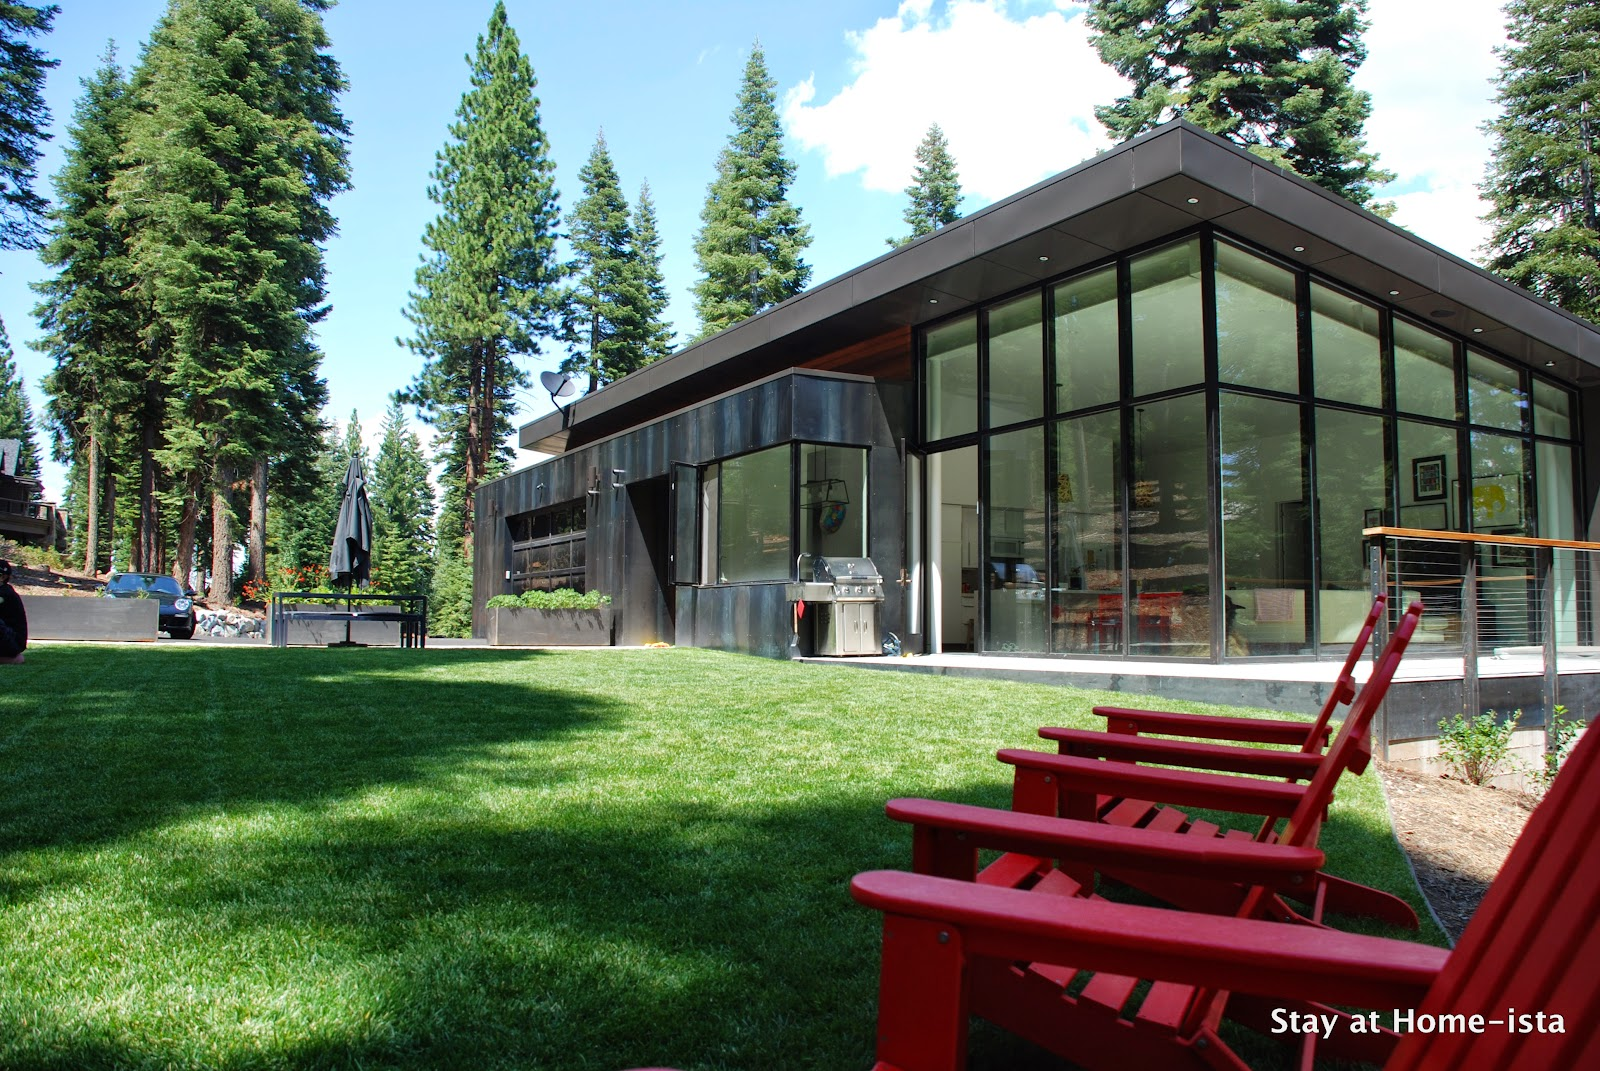 Love this house! The metal and glass are so modern, but it's in the forest!